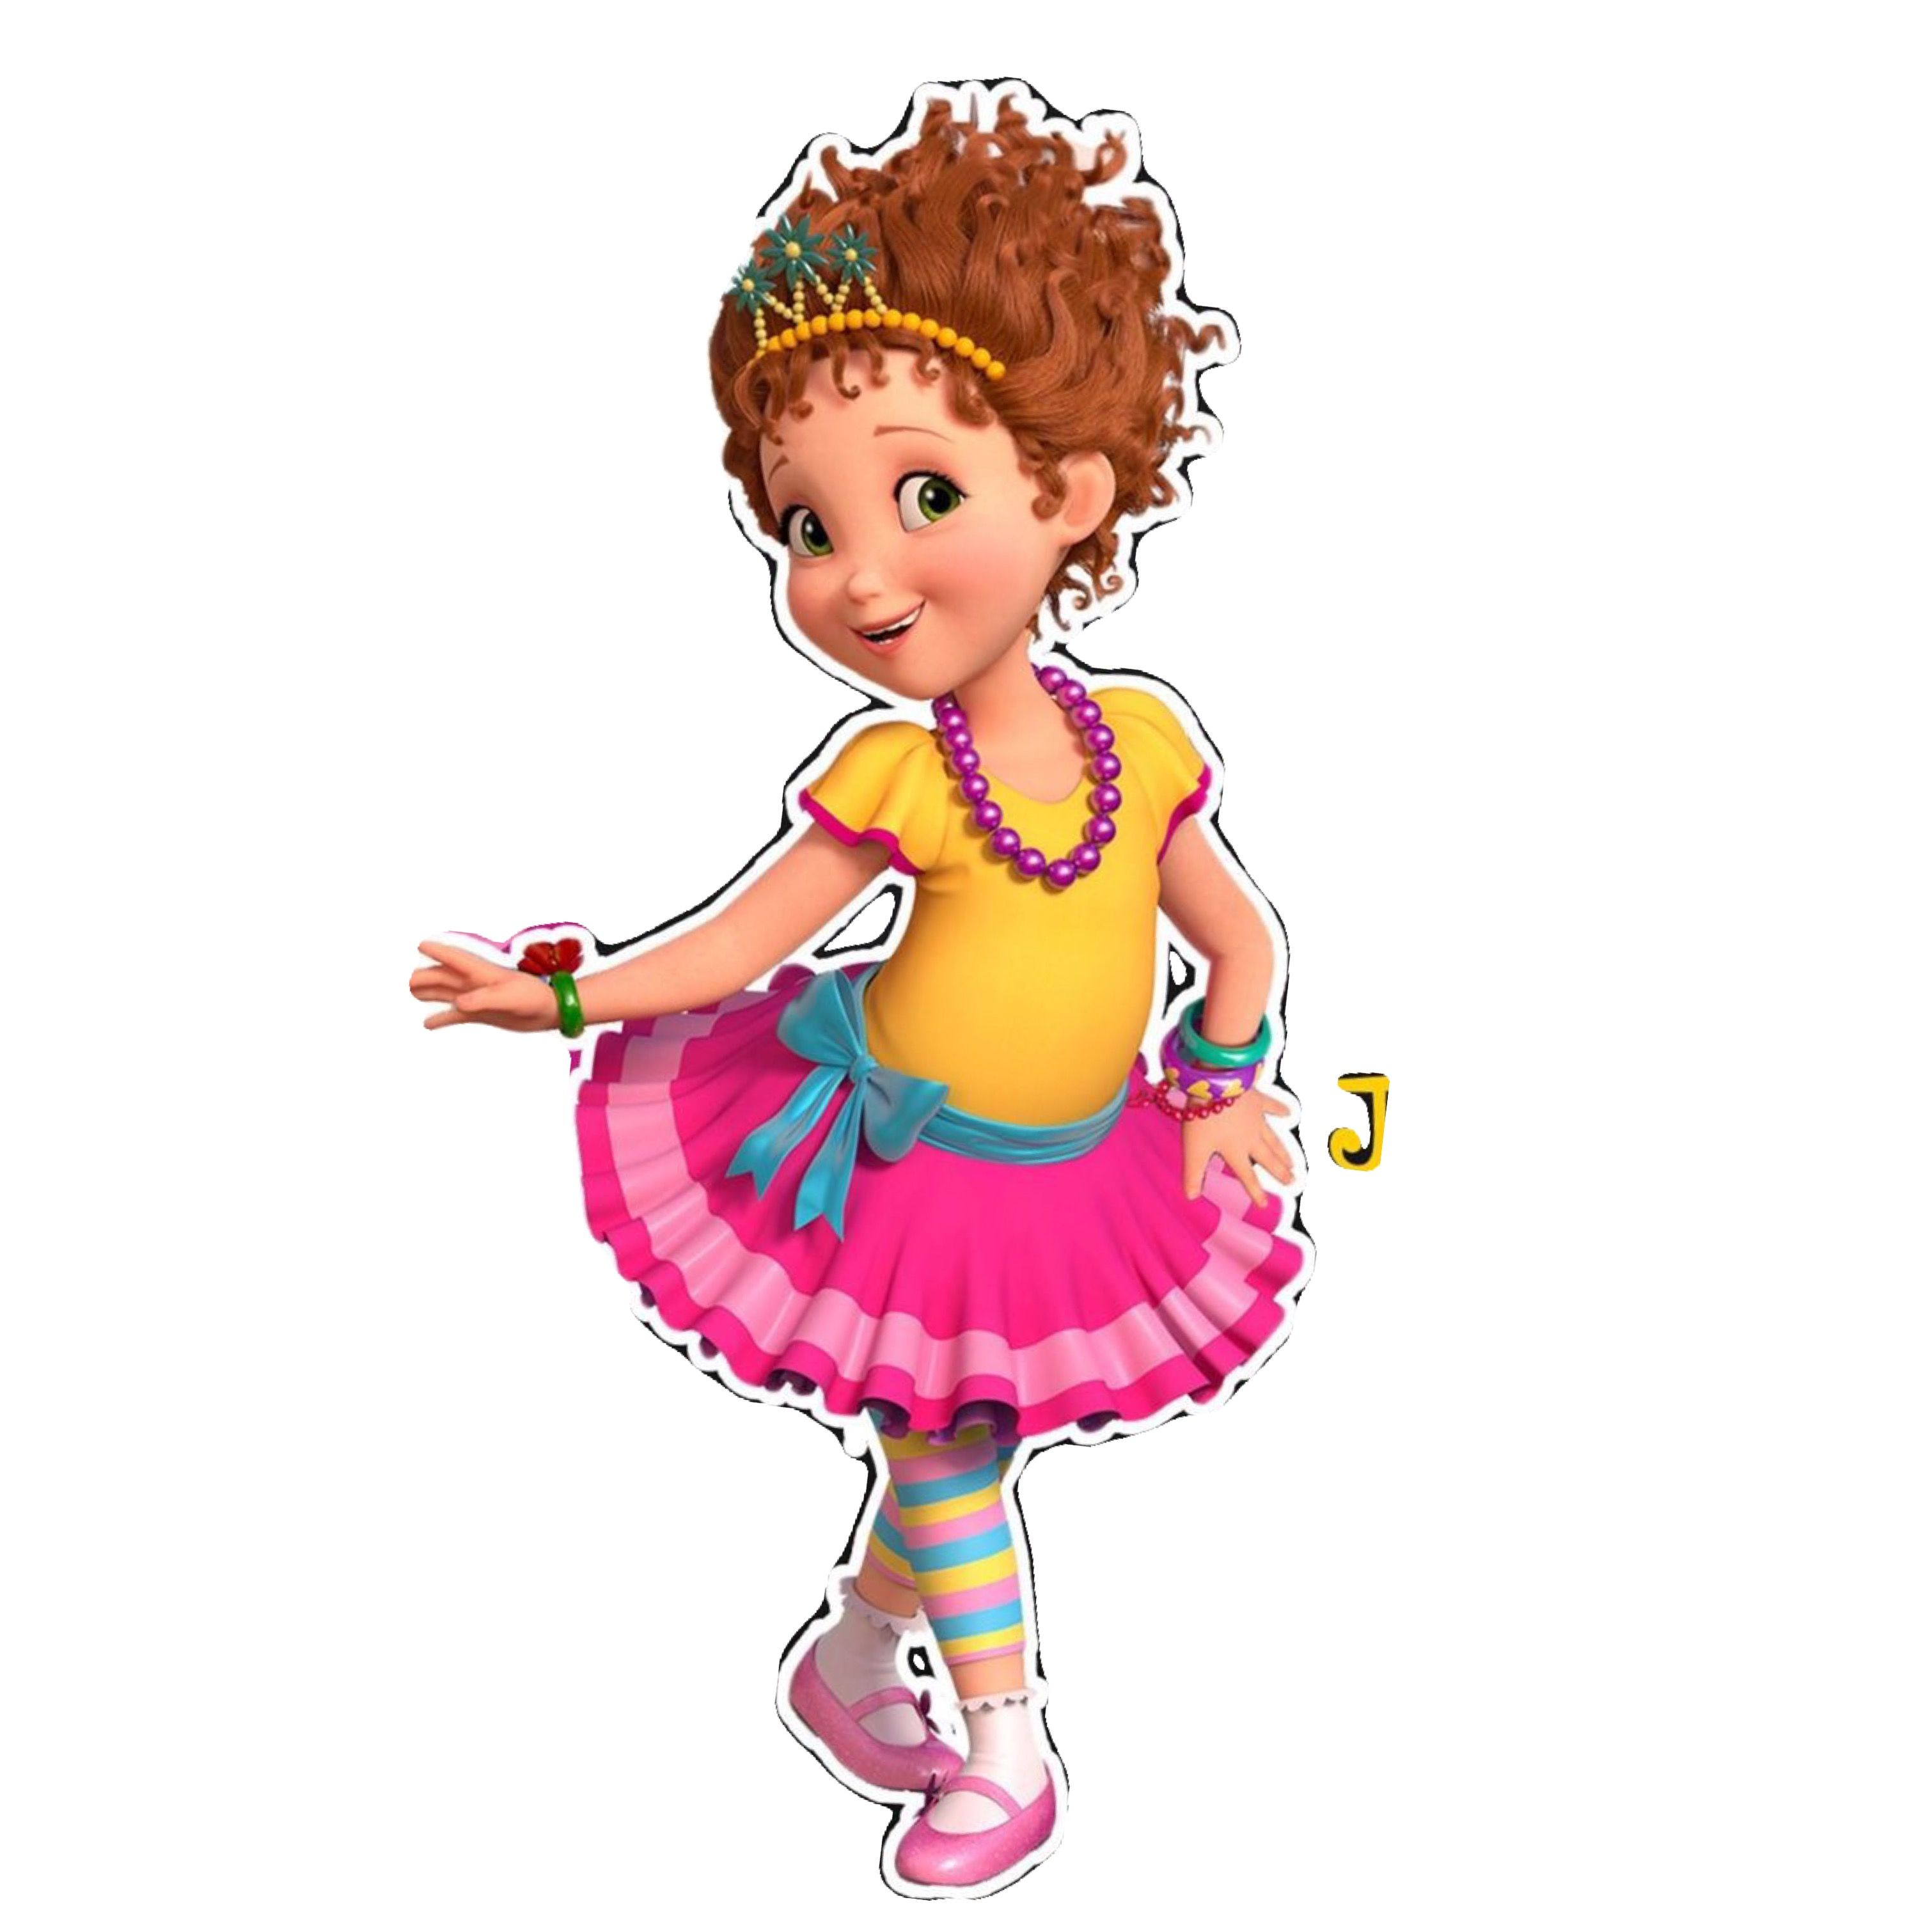 Pin By Karena Carrillo On Fancy Mamcy Fancy Nancy Fancy Nancy Clancy Fancy Birthday Party